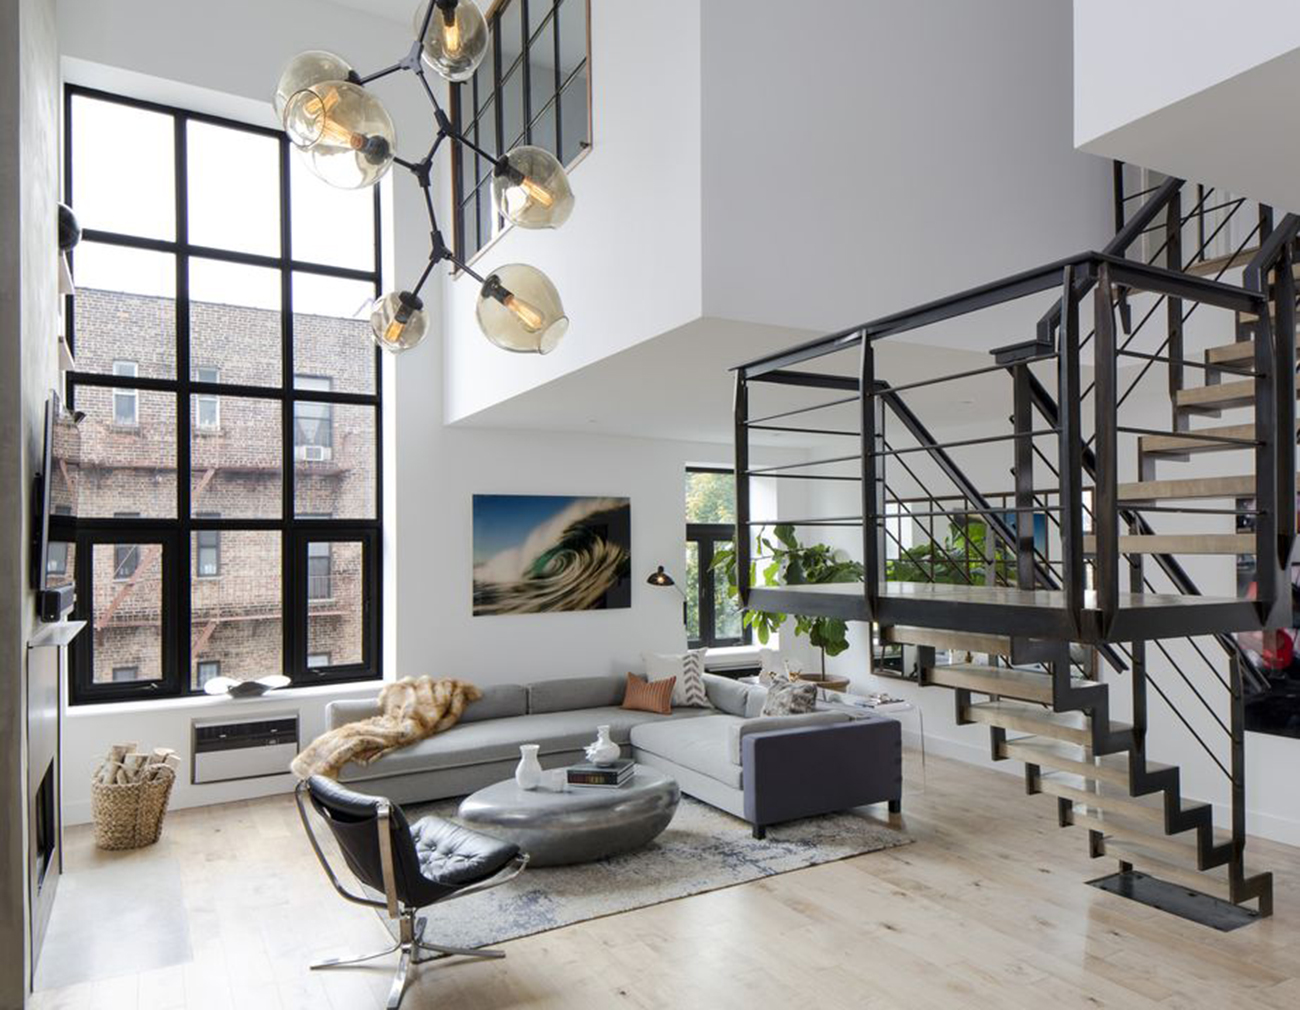 13 Stunning Apartments In New York: 5 Of The Best New York Apartments To Rent